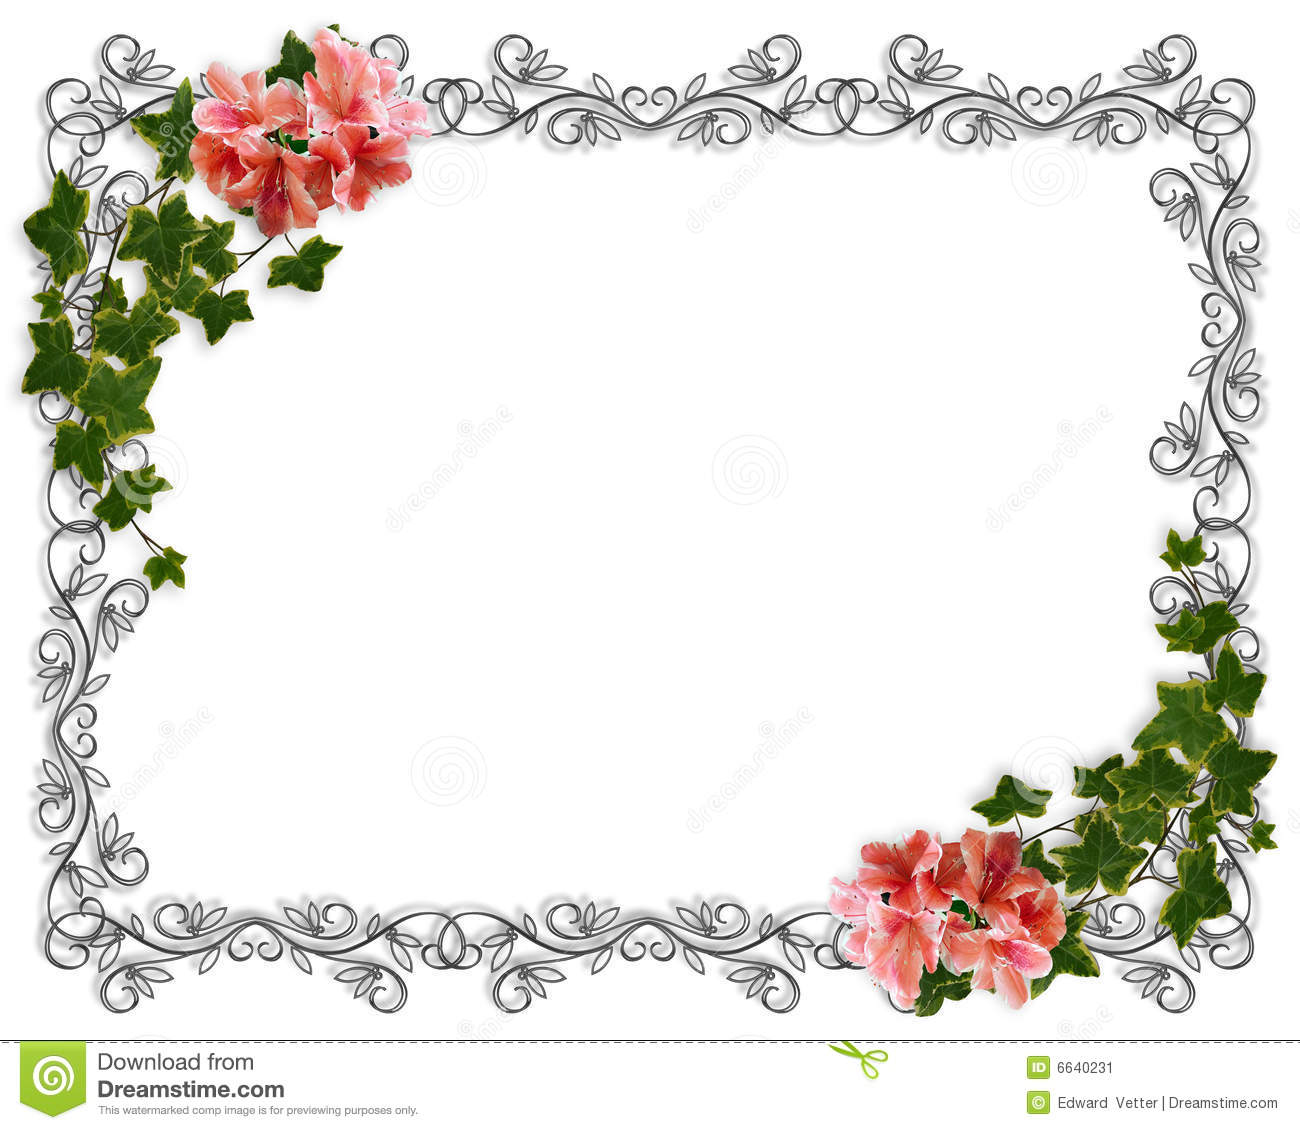 Wedding Invite Borders: Wedding Invitation Ivy Floral Border Stock Image